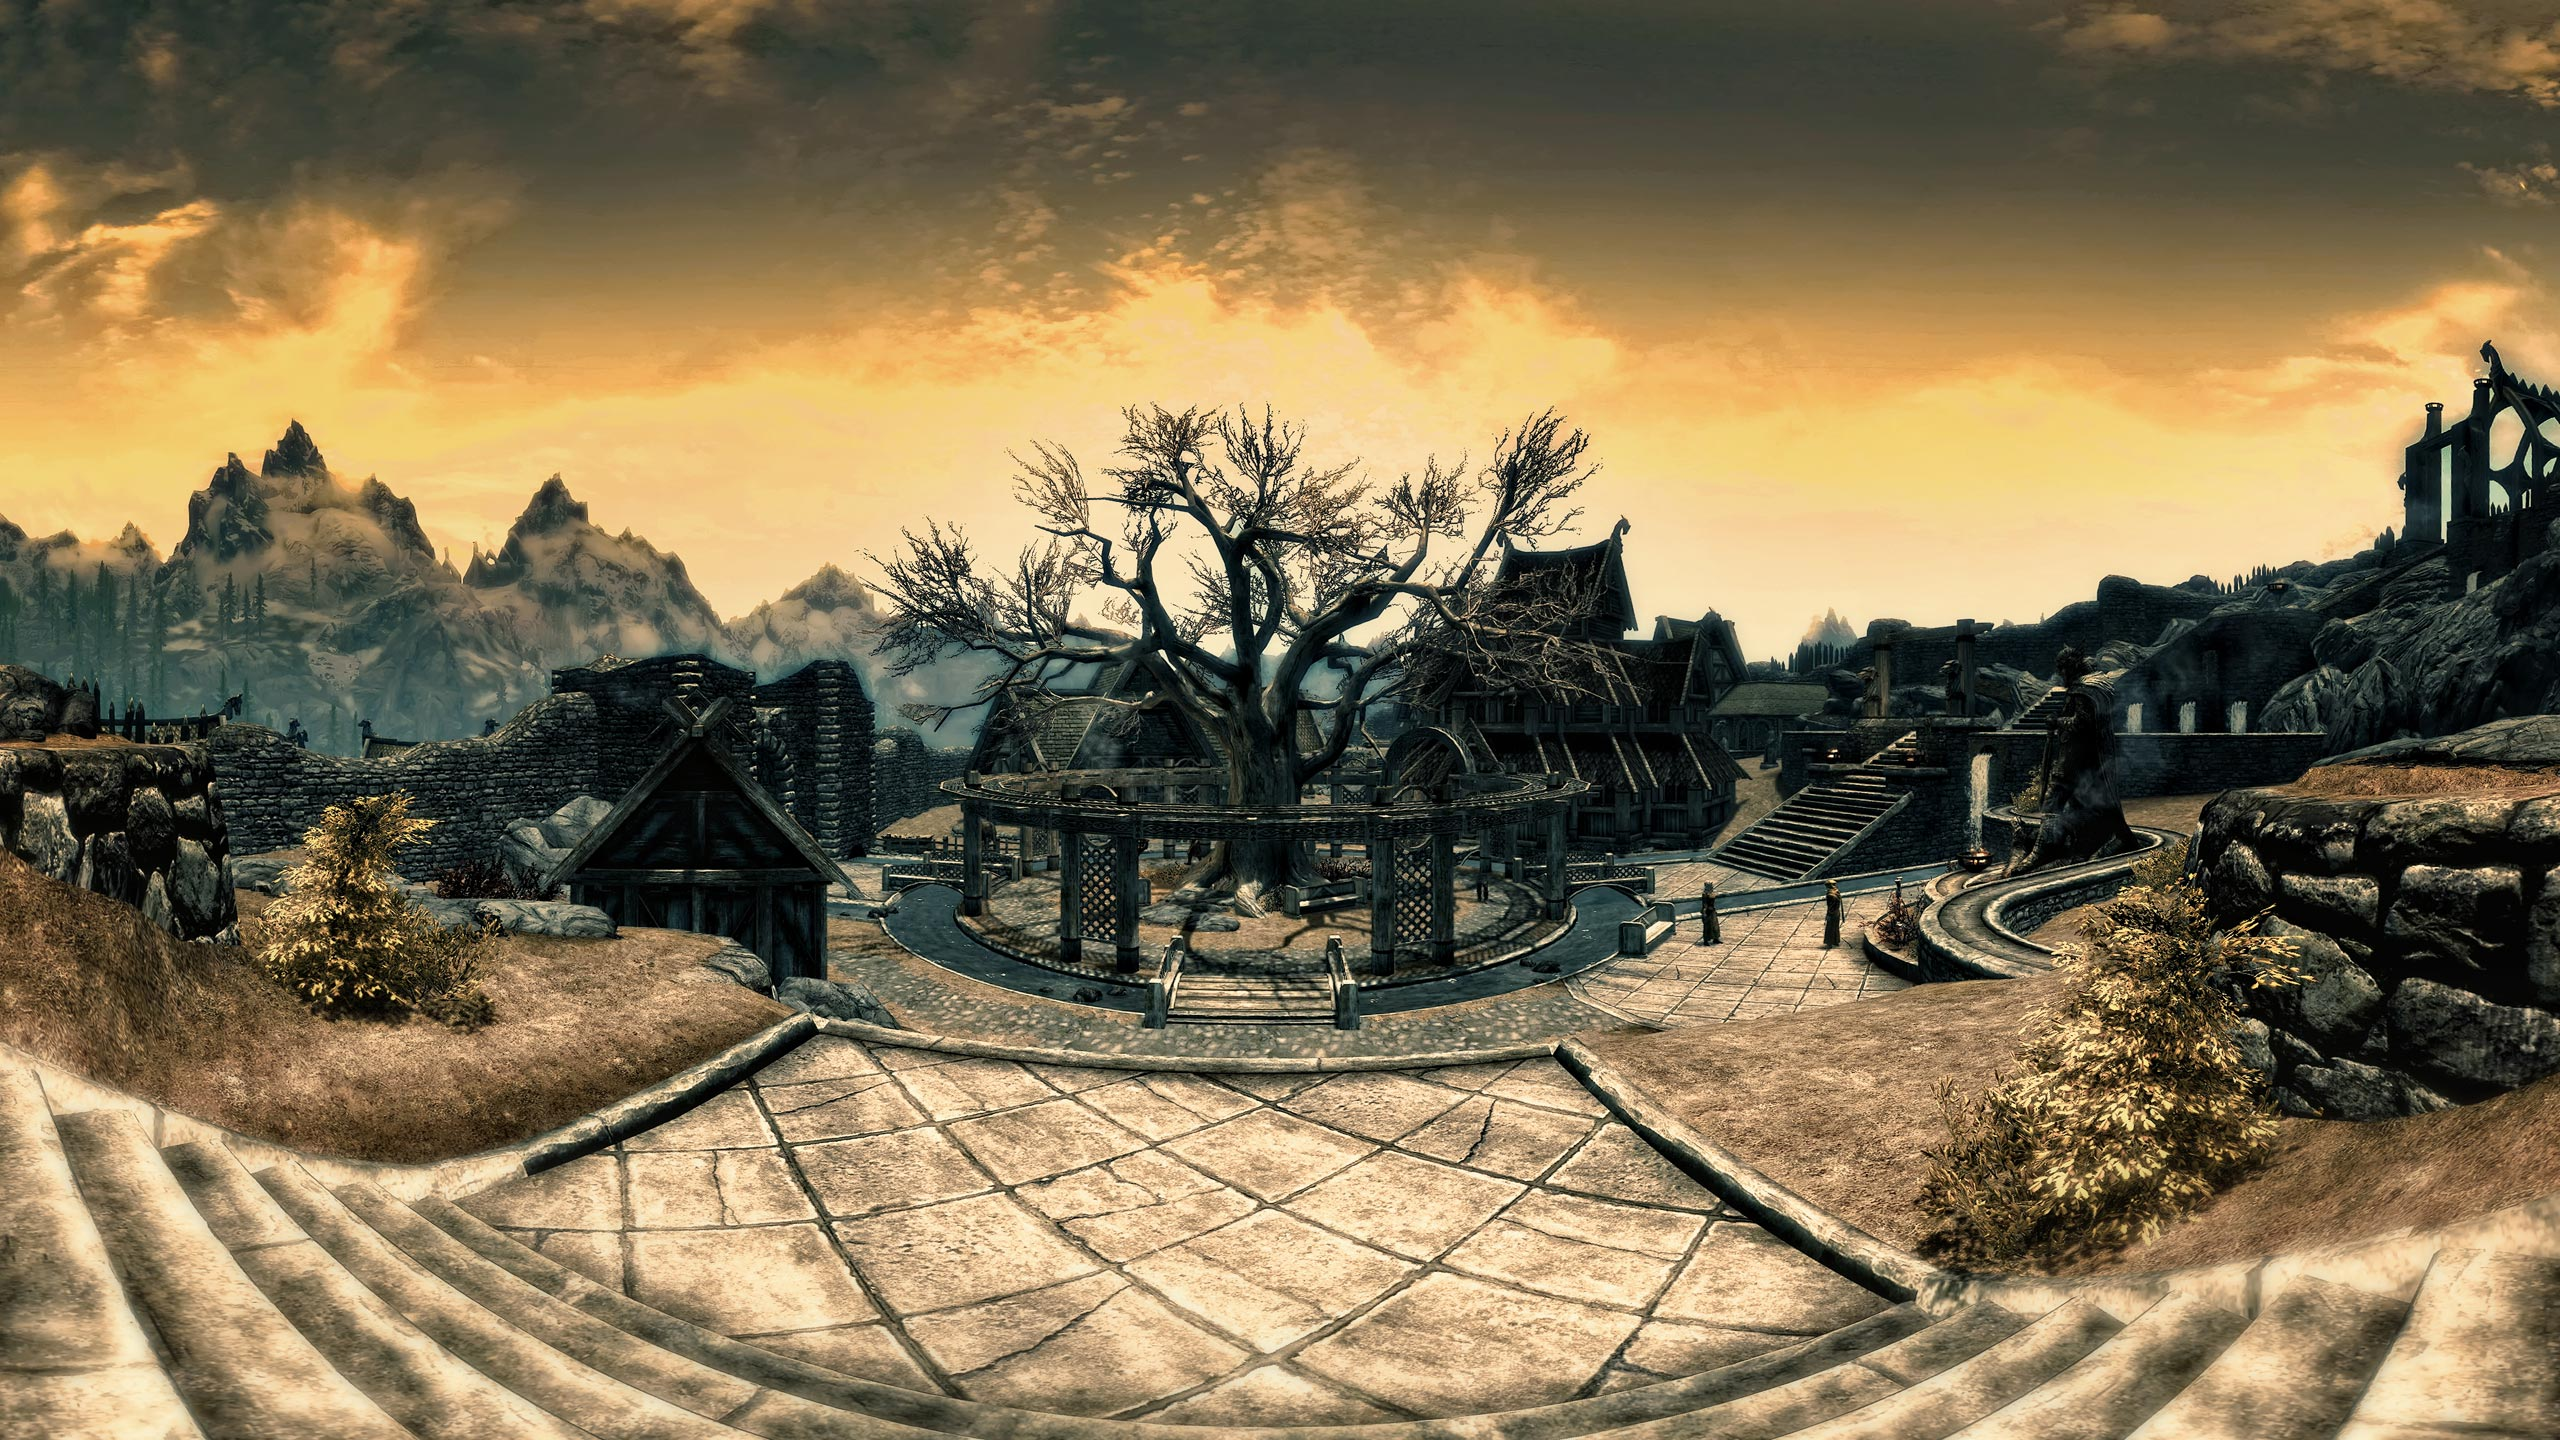 Panoramic screenshot from the game Elder Scrolls Skyrim